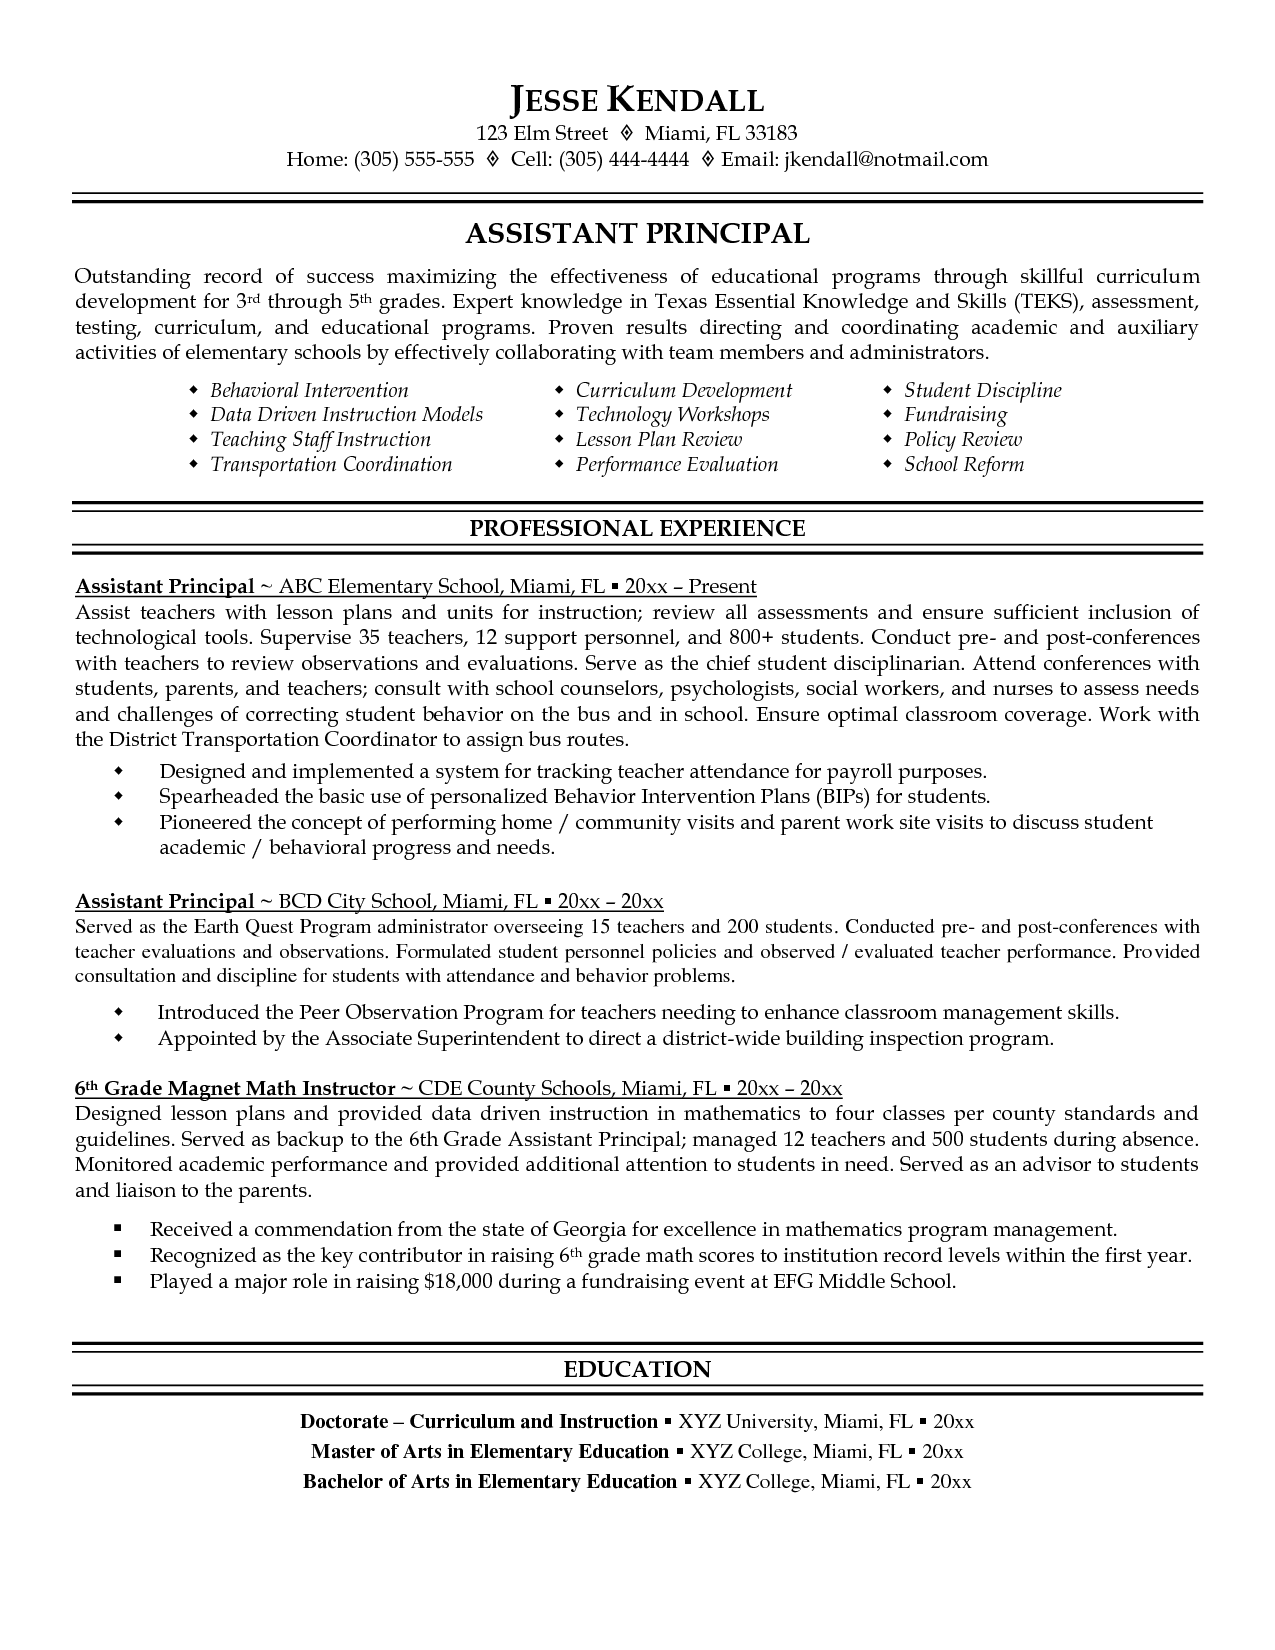 Assistant Principal Resume Sample Education Resume Professional Resume Samples Teacher Resume